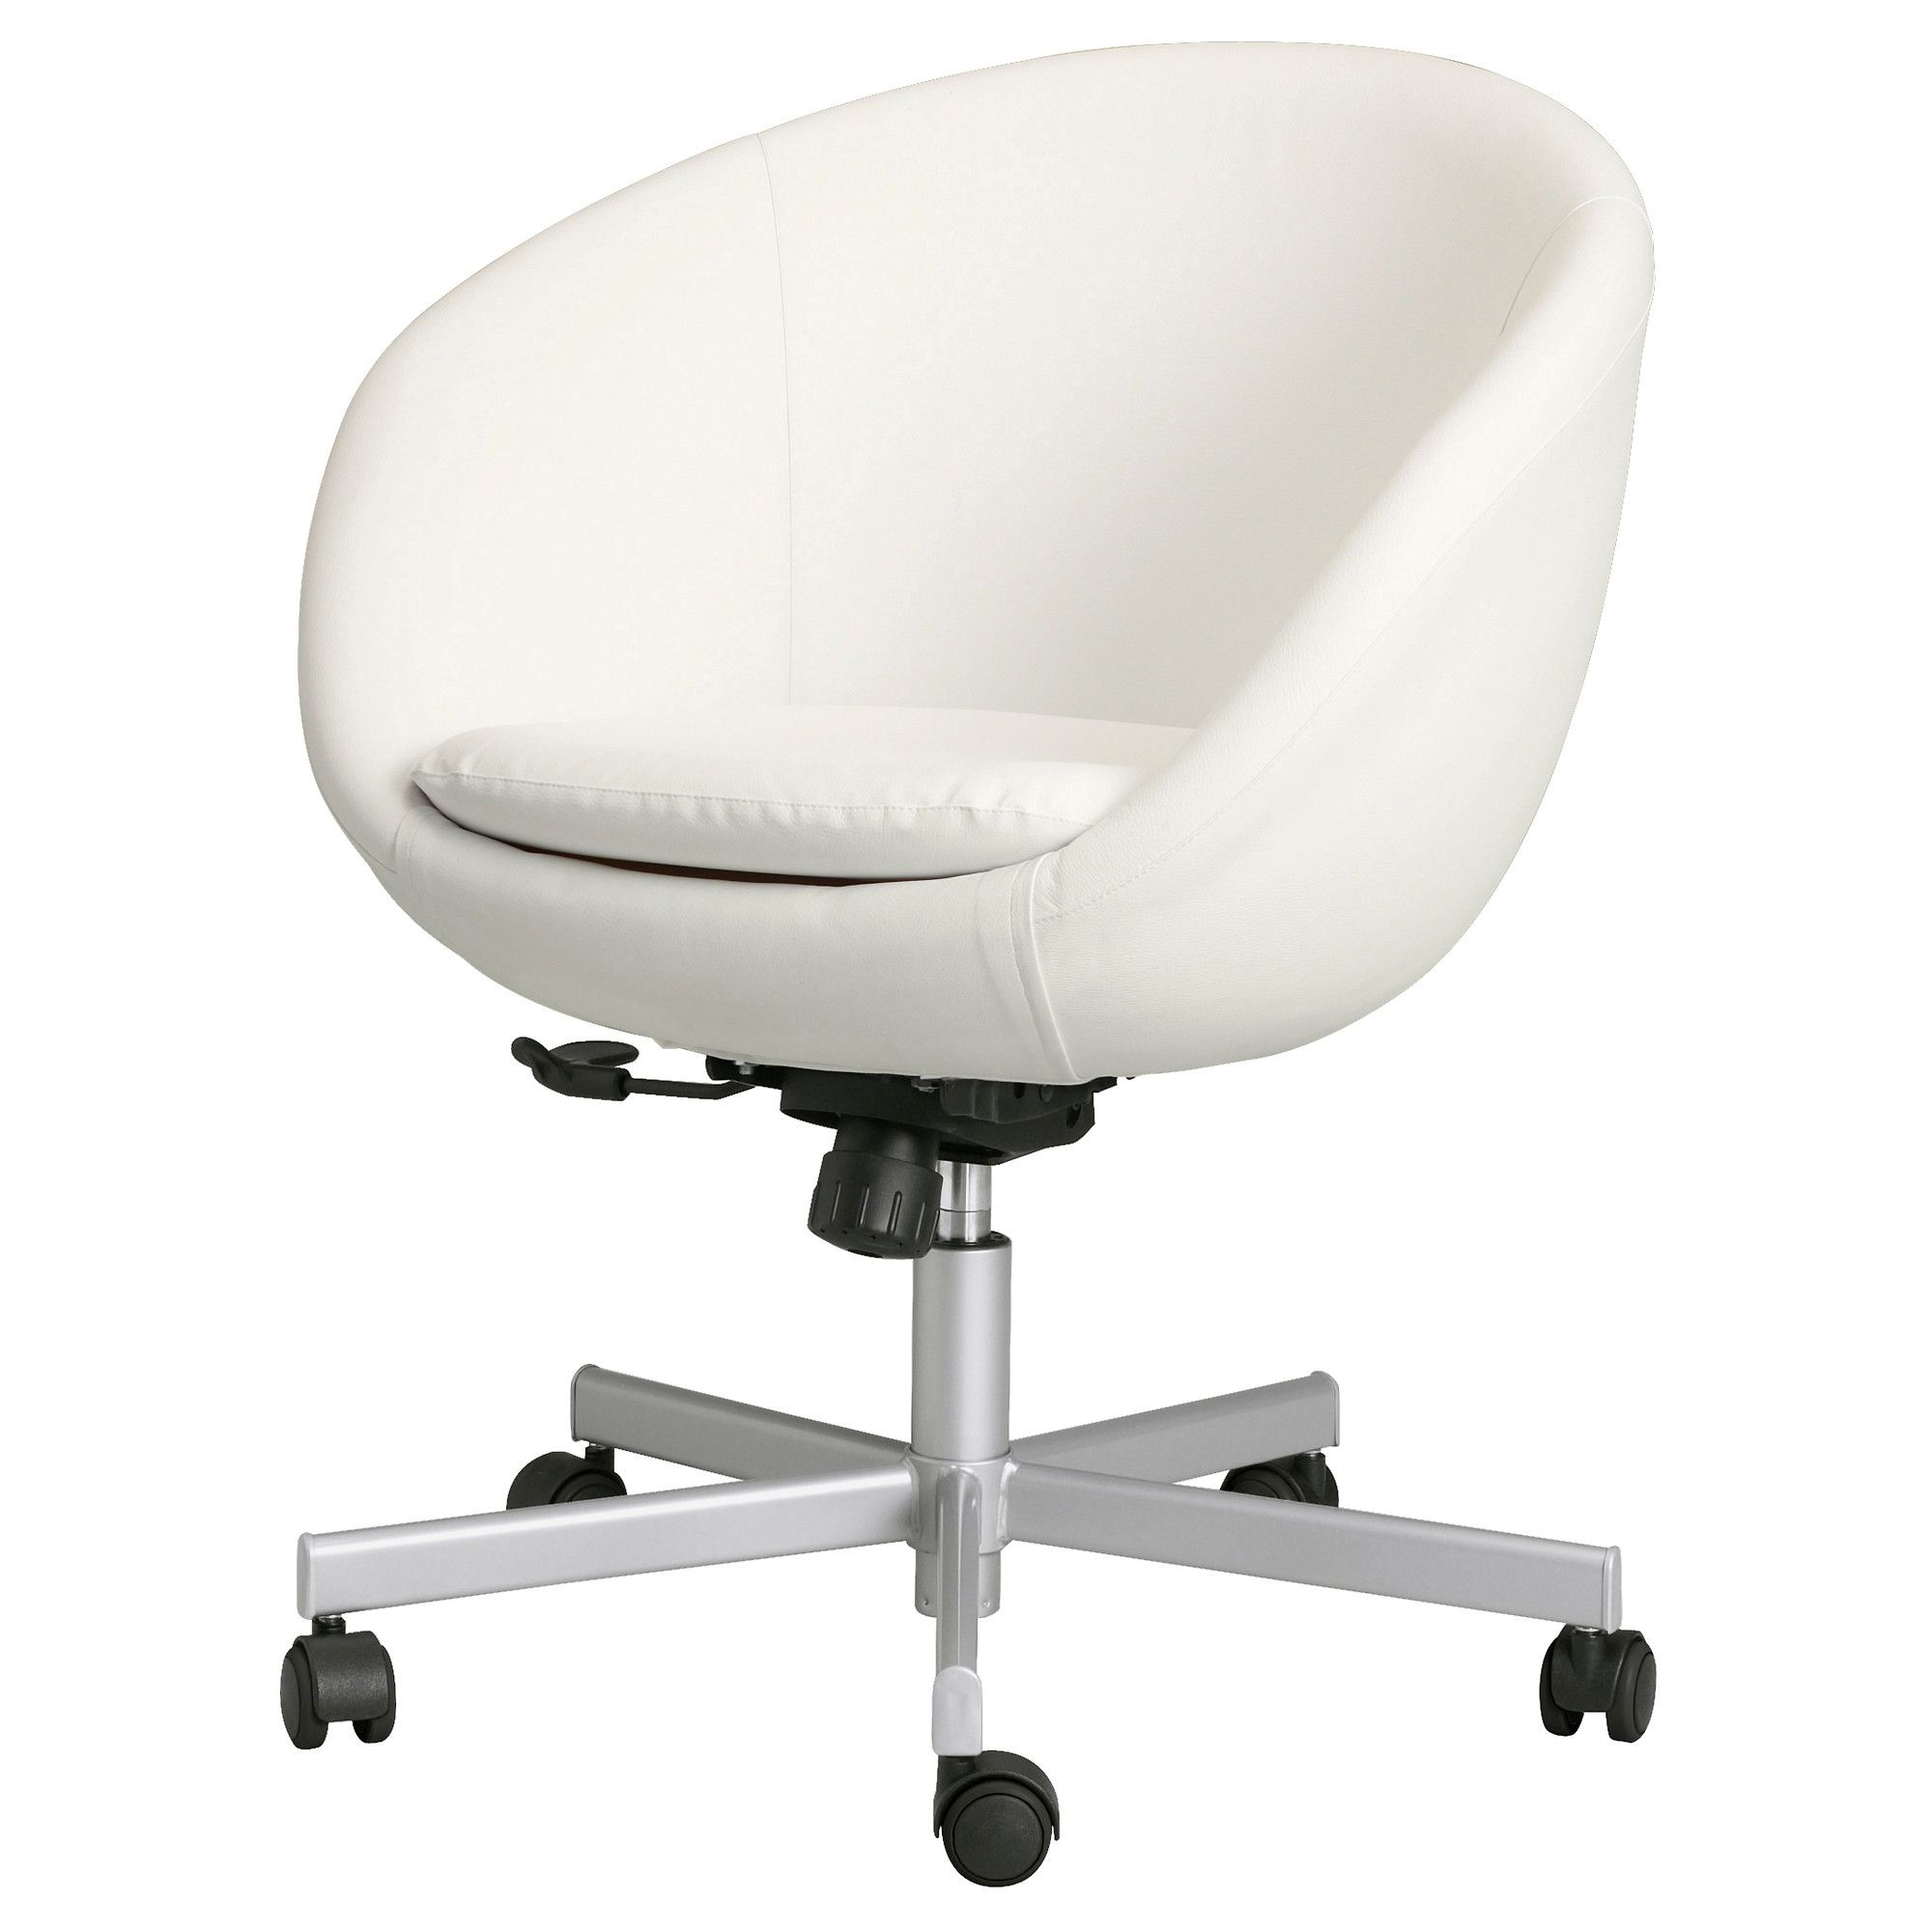 chairs of no chair canada full amazon armless white high executive futuristic size arms flip contemporary staples desk office leather